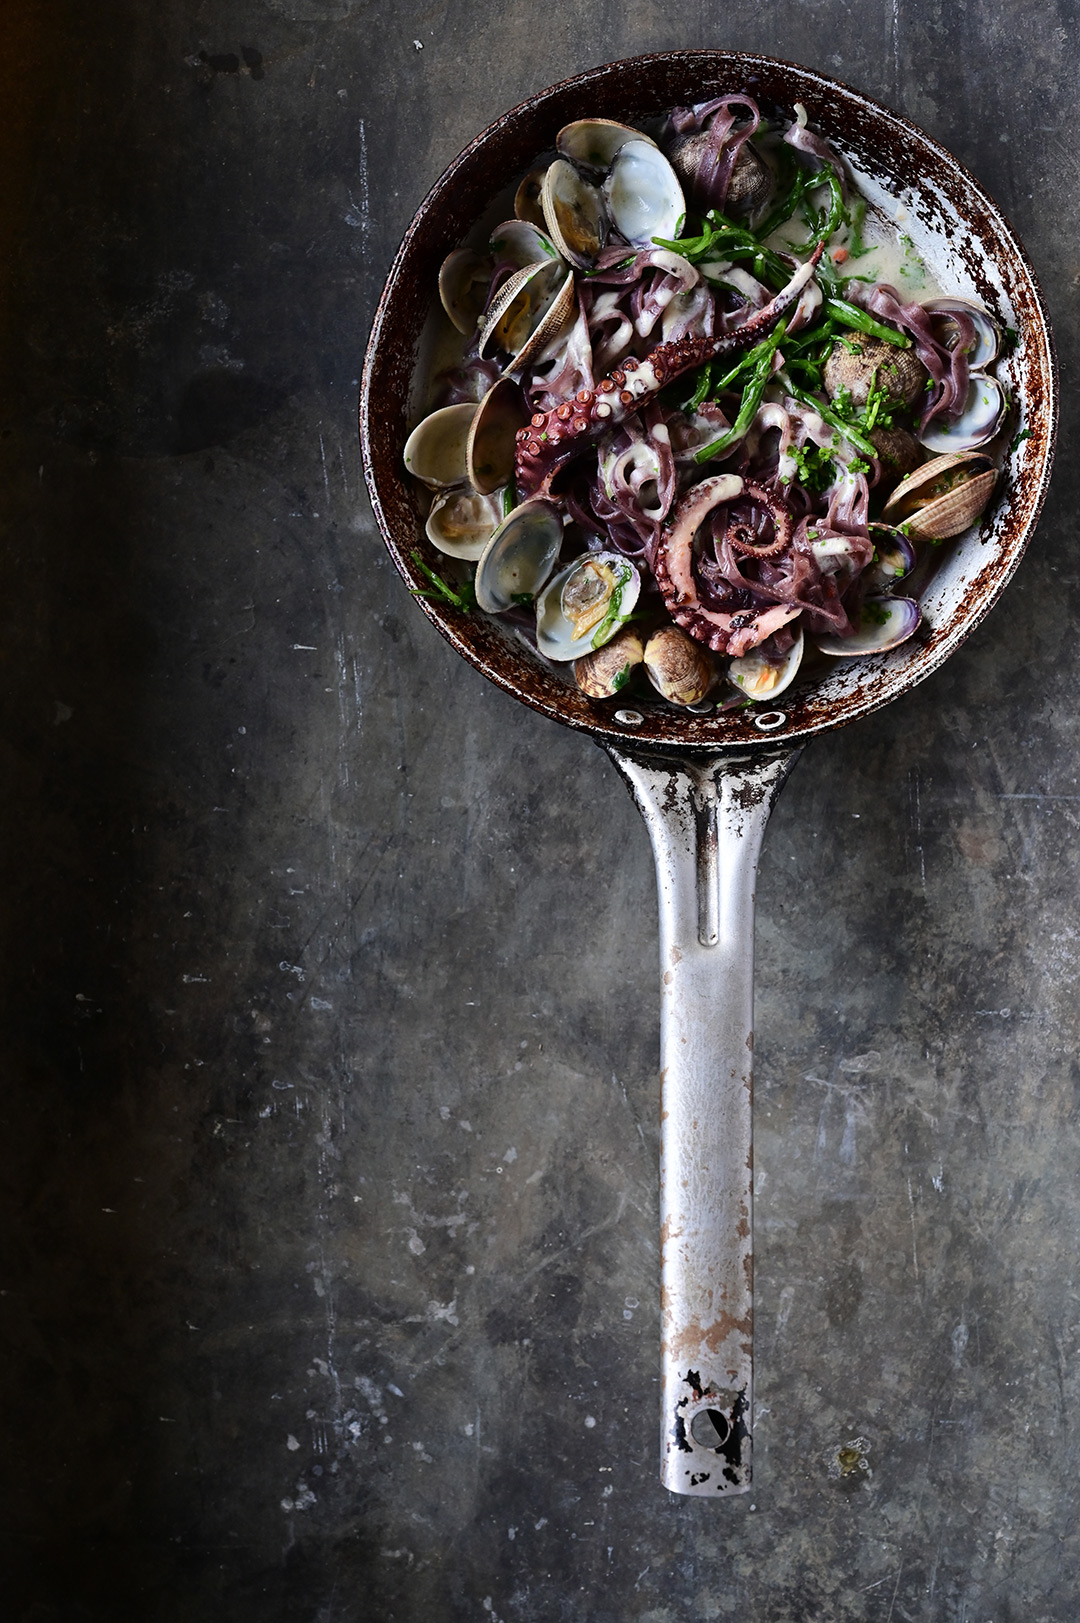 serving dumplings | Creamy garlic black pasta with clams and squid